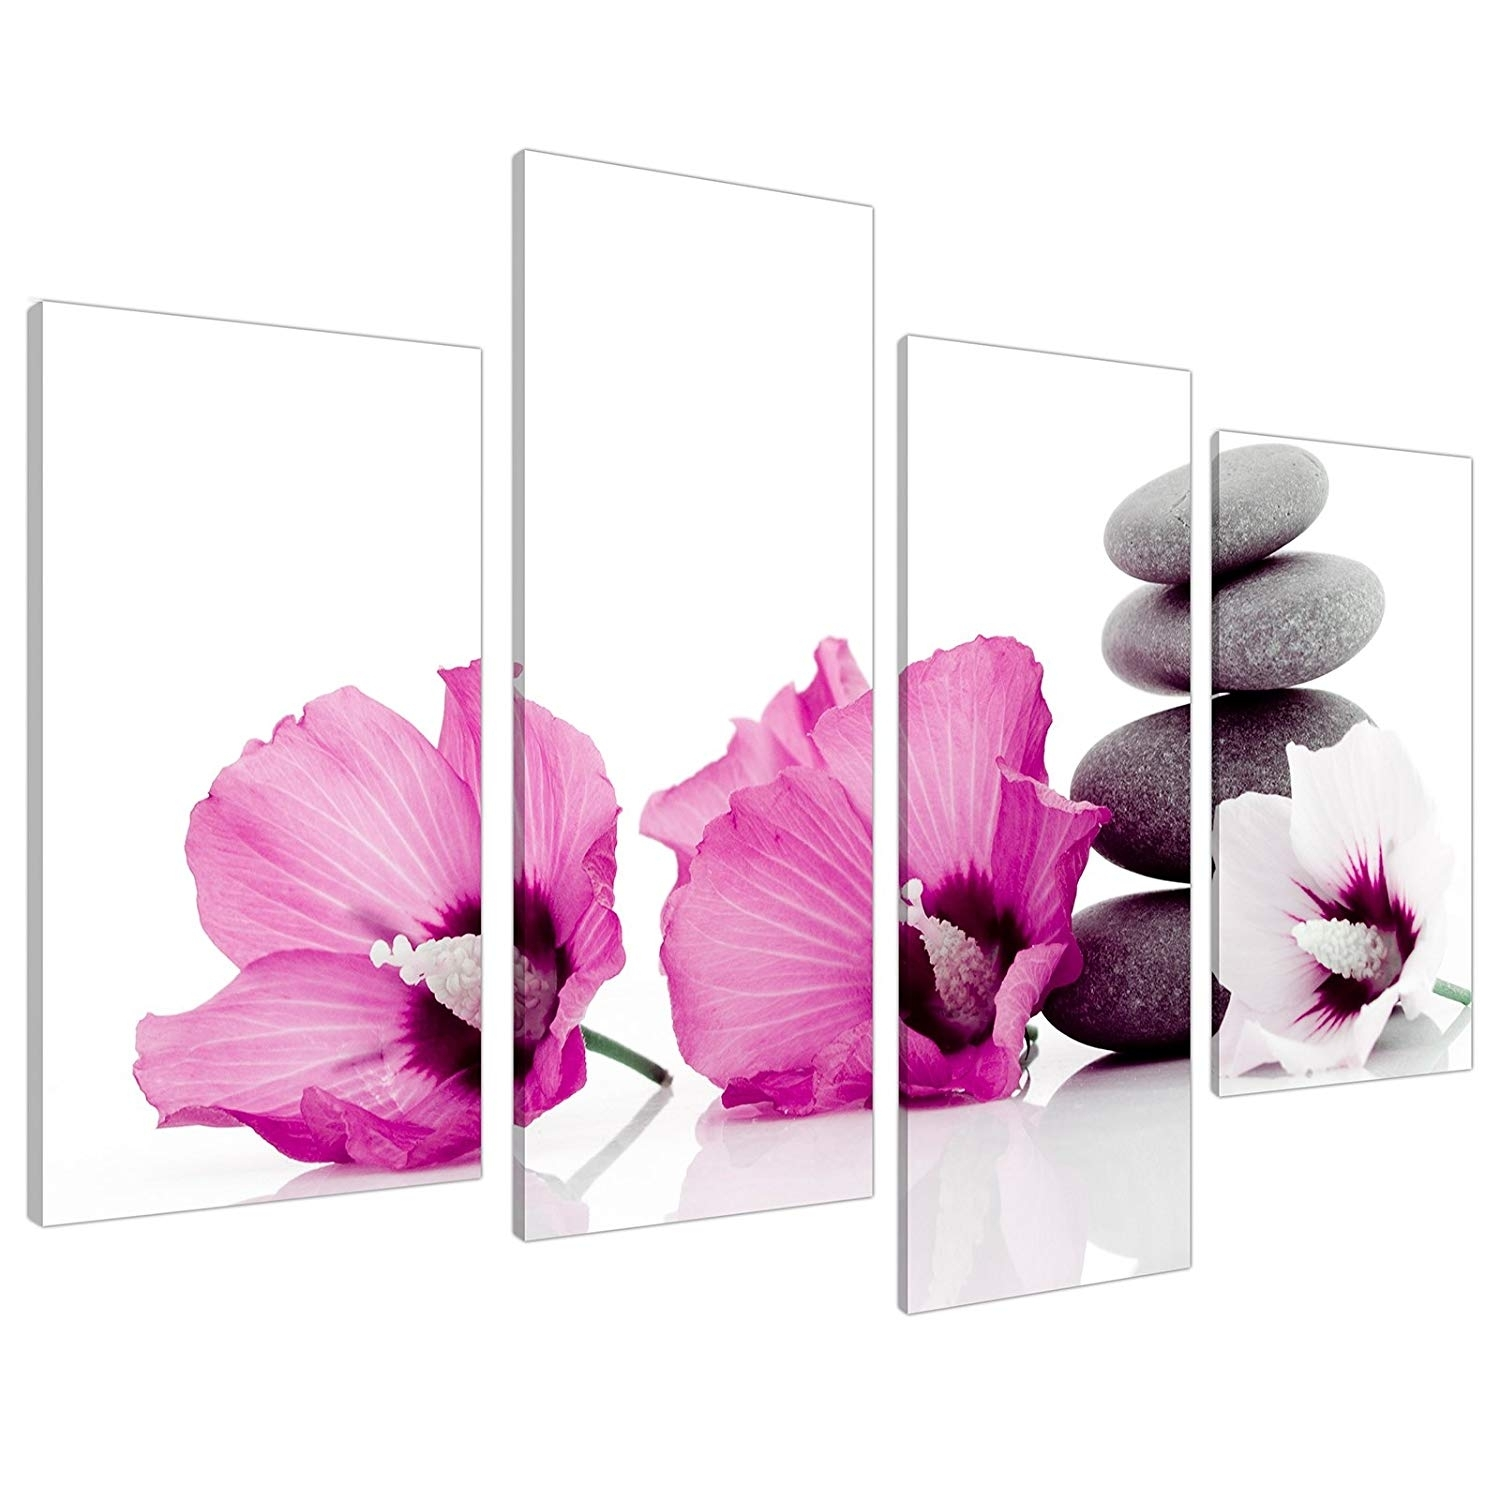 Large Pink Flower Floral Canvas Wall Art Pictures 130Cm Set Xl 4069 intended for Pink Wall Art (Image 12 of 20)